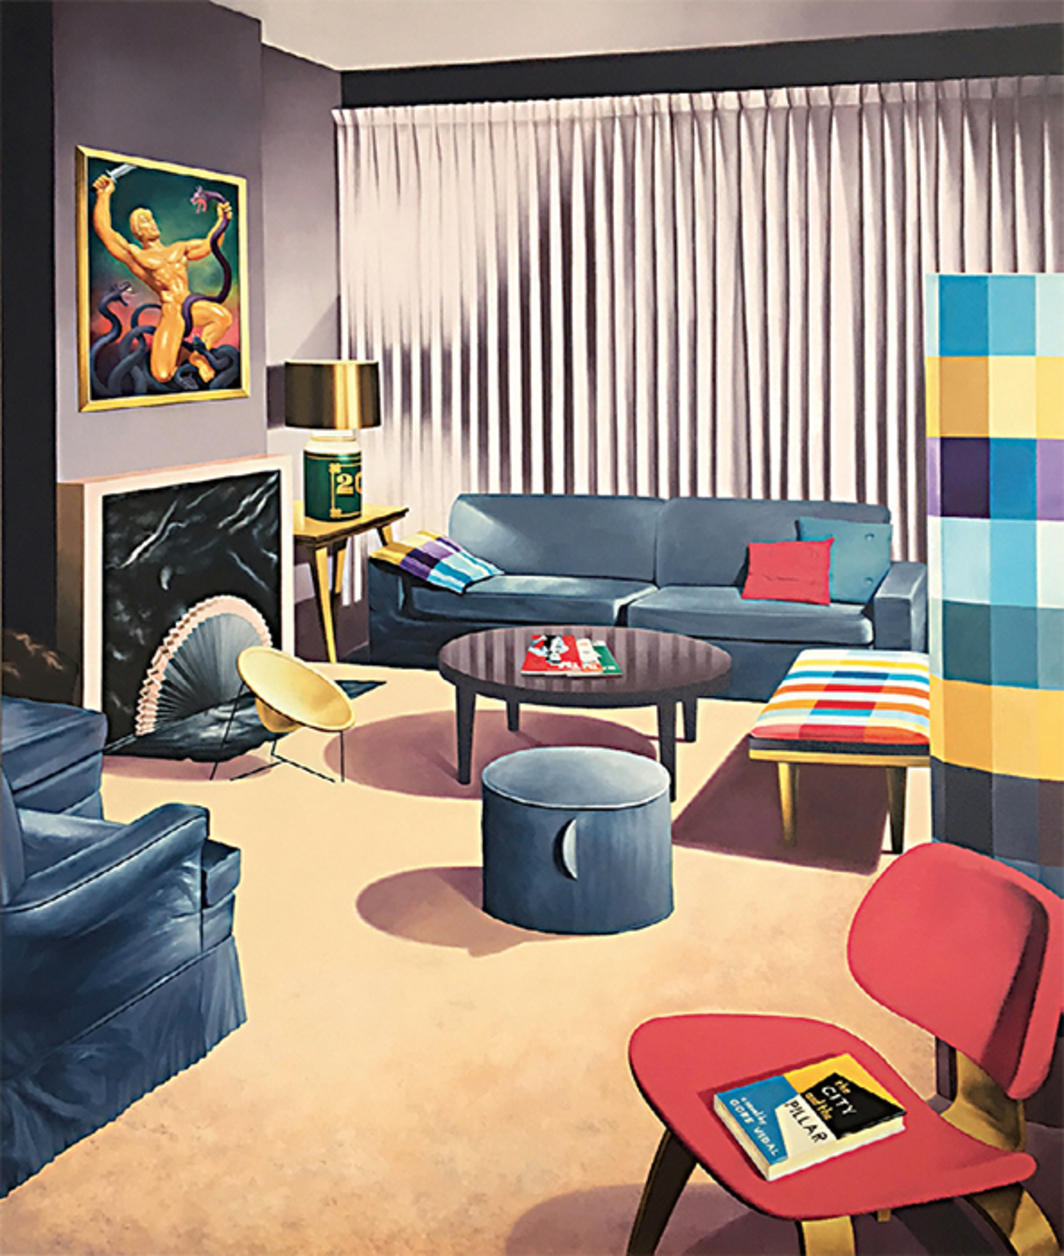 "McDermott & McGough, Furnishings, Works of Art and Other Status Symbols, 1965/2017, oil on canvas, 60 × 48""."